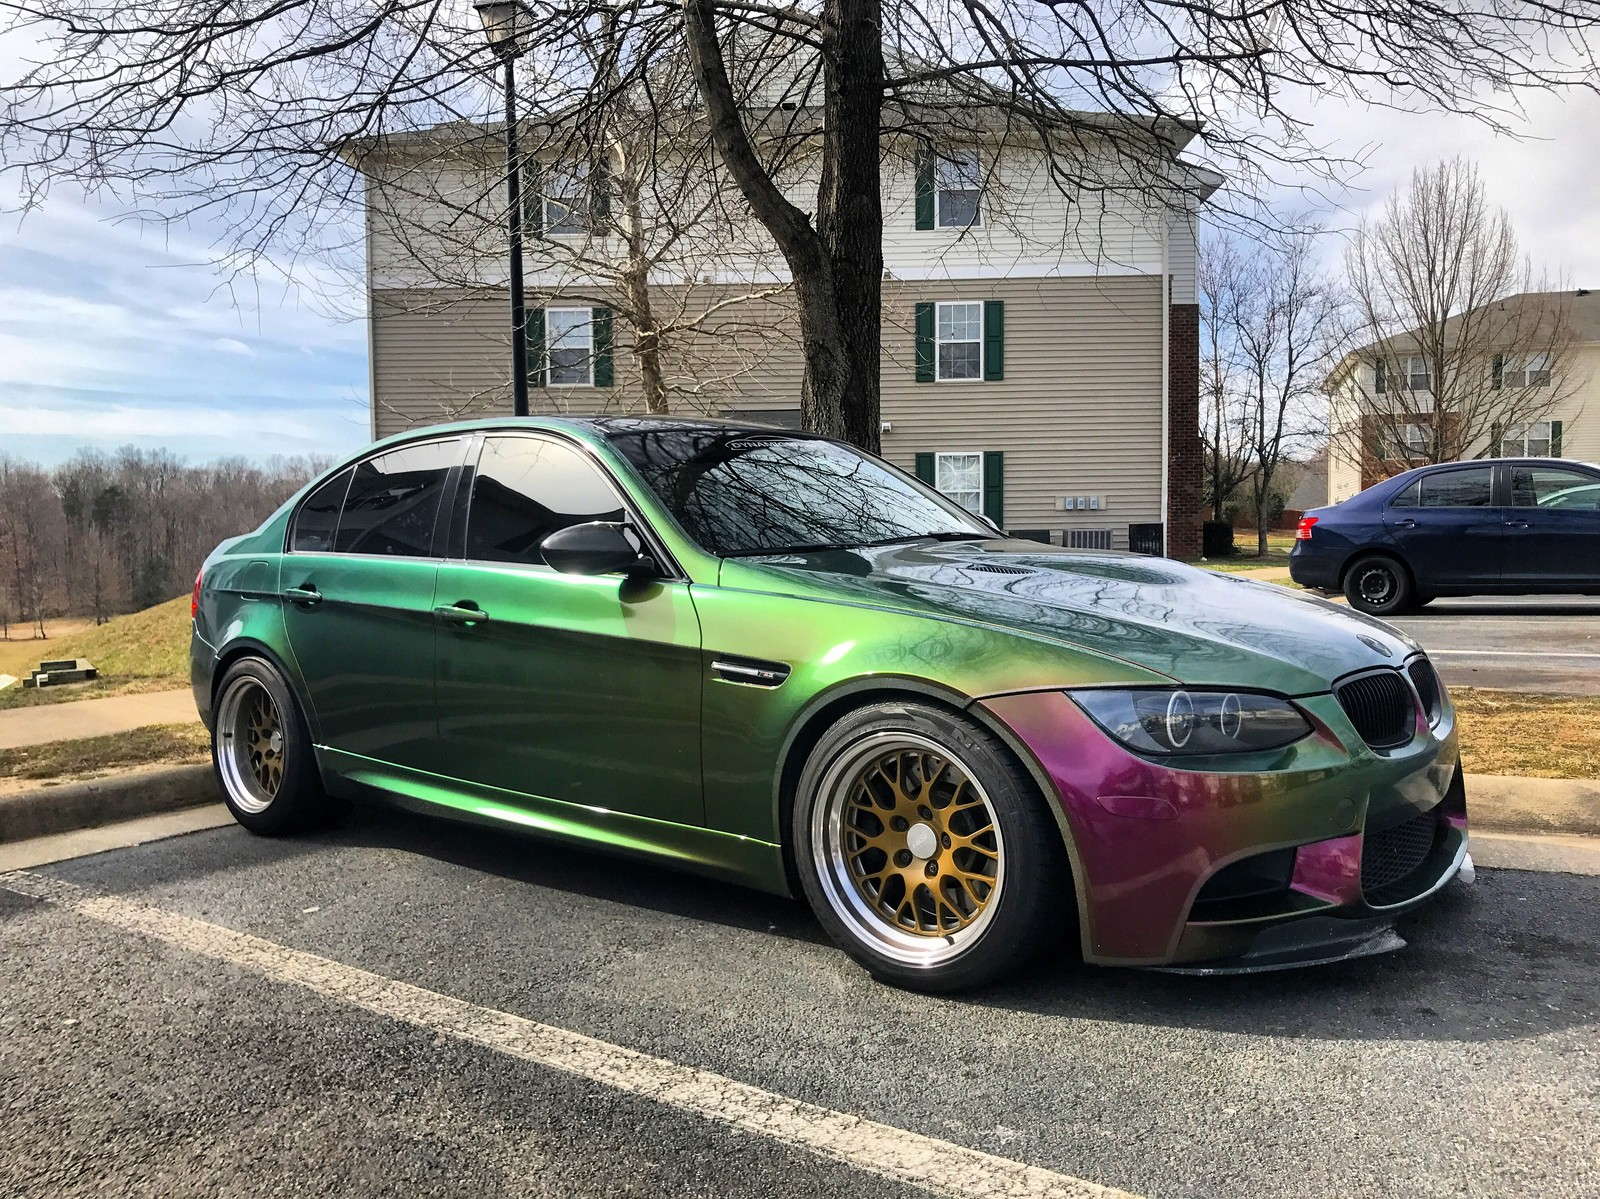 2010 Bmw M3 E90 1 4 Mile Drag Racing Timeslip Specs 0 60 Dragtimes Com